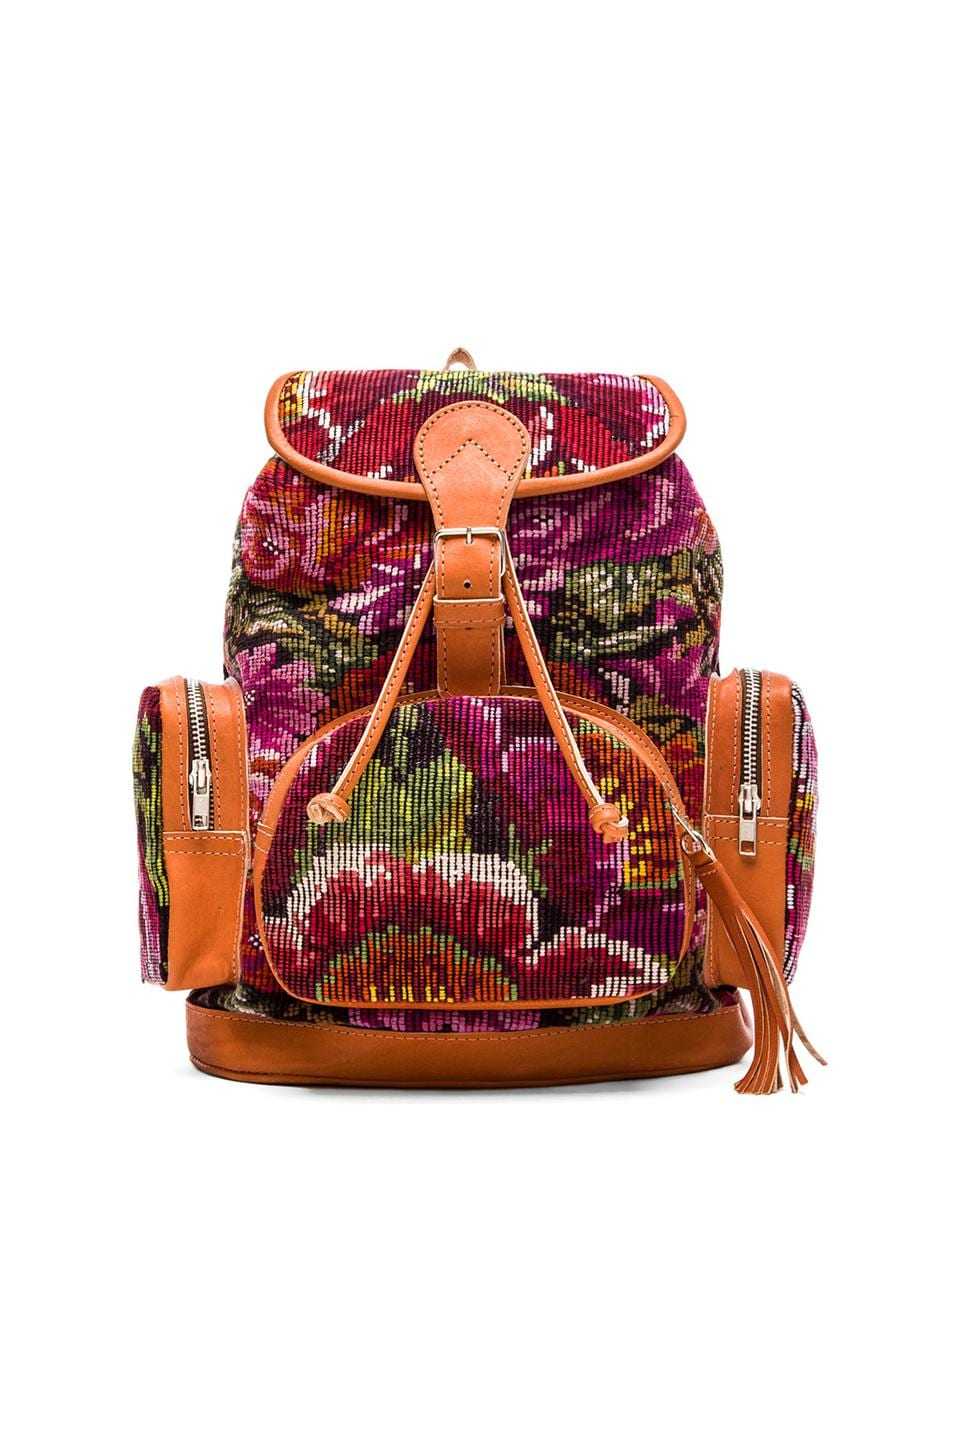 STELA 9 Anita Backpack in Floral Huipil